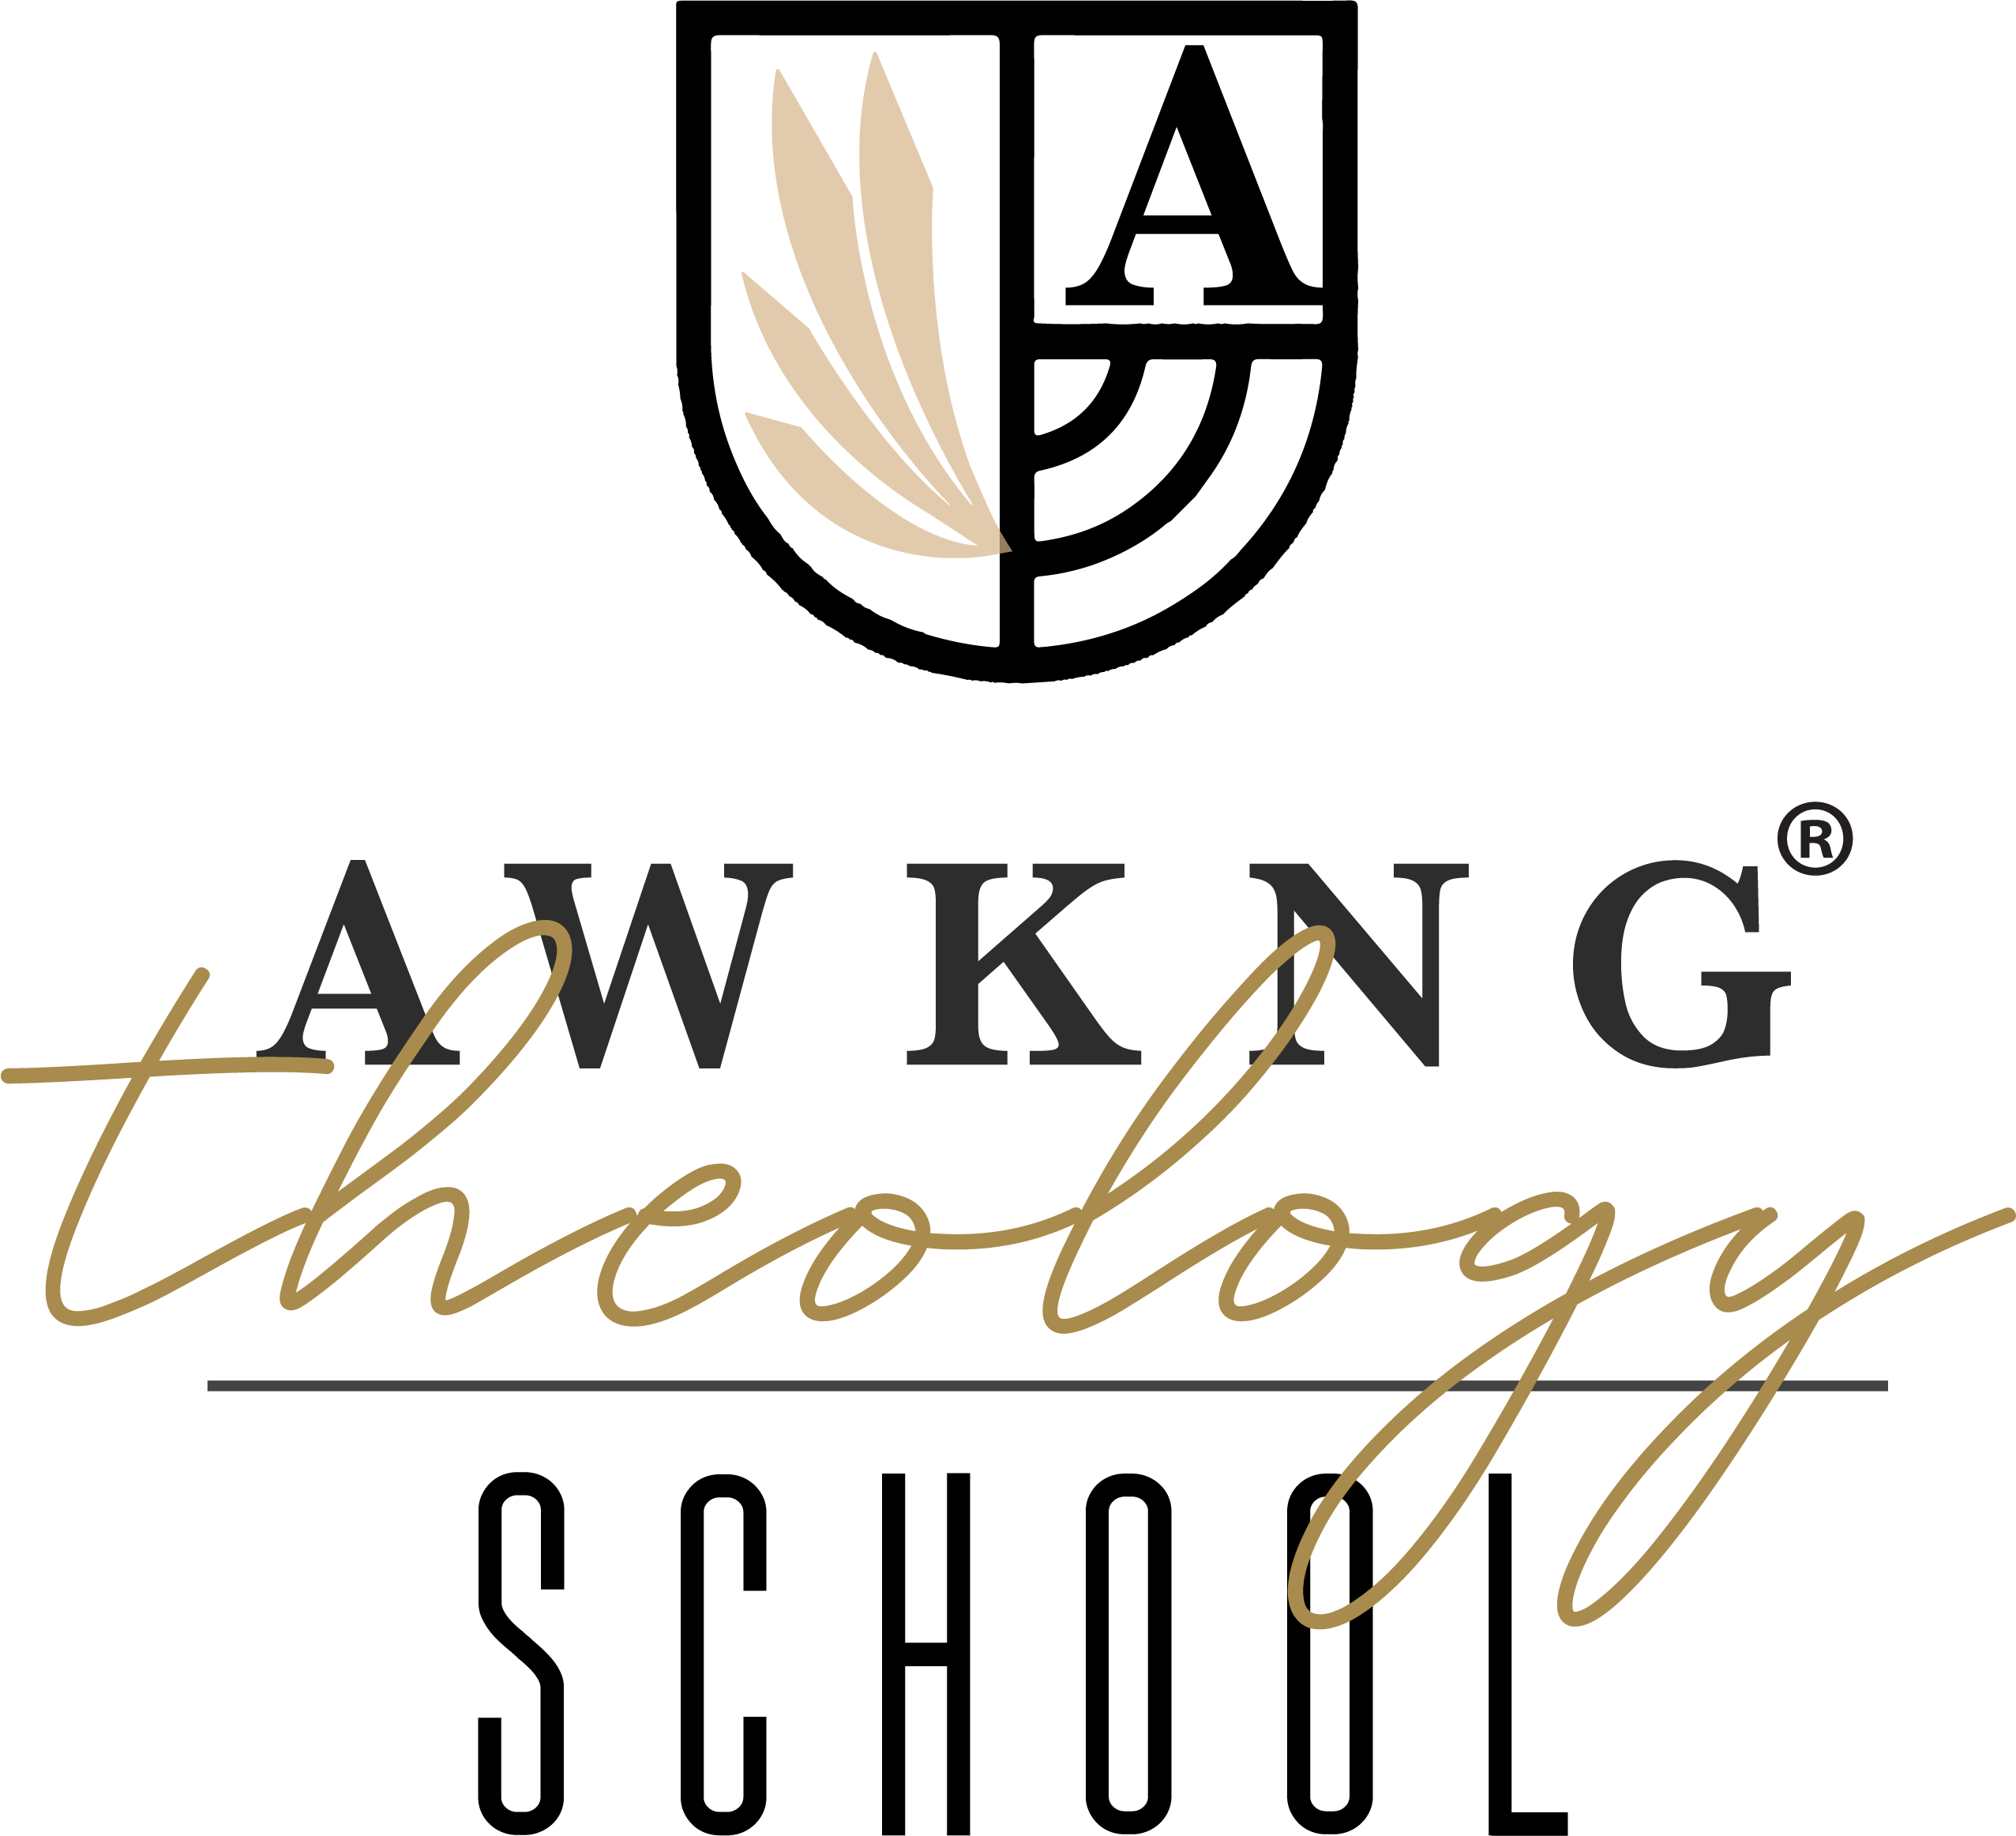 AWKNG School Of Theology Provides The Platform To Equip Christians For Effective Ministry And Christian Living